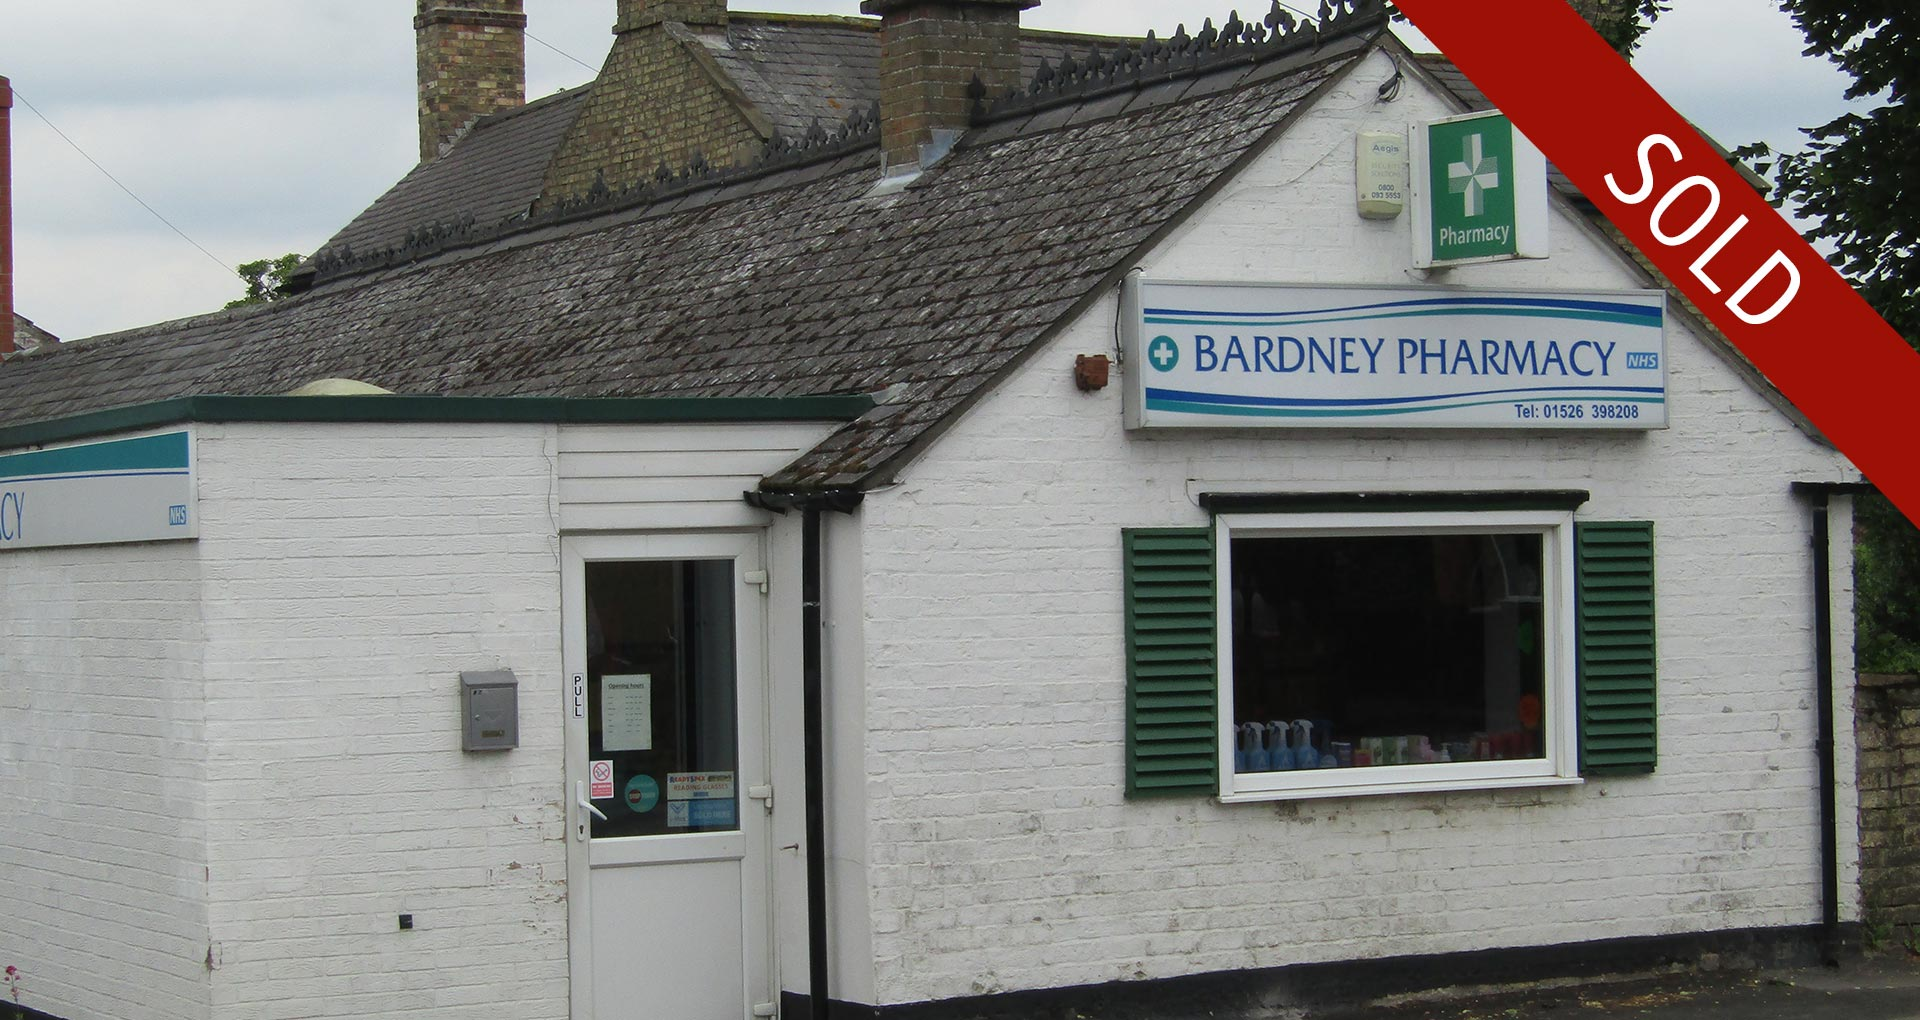 Sale of Bardney Pharmacy, Lincolnshire